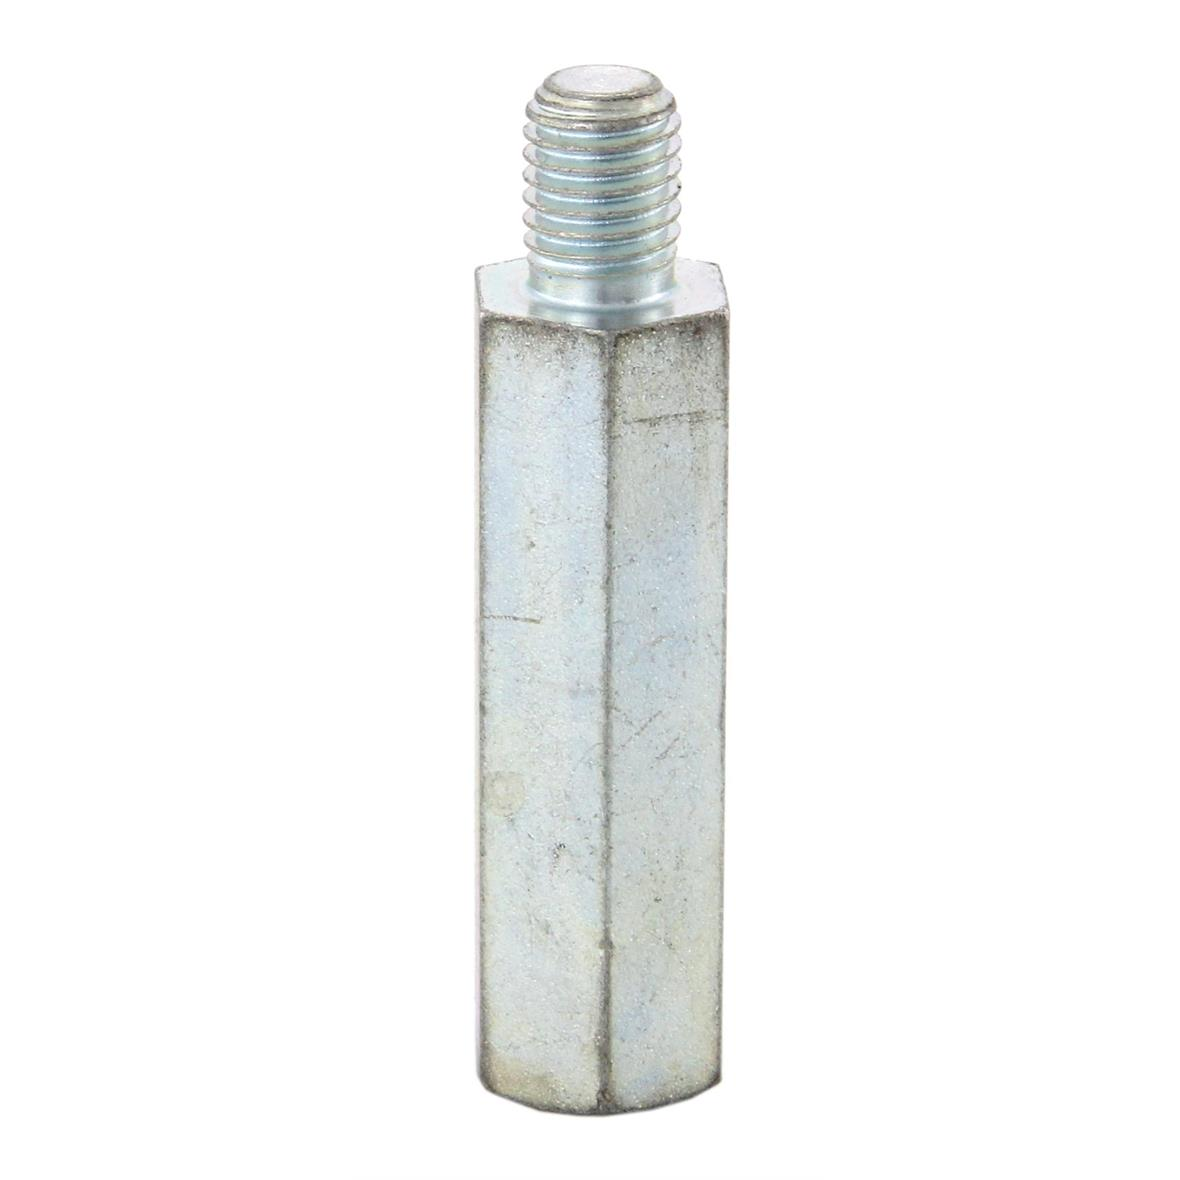 Product Image for 'Distance Nut, shock absorber rearTitle'